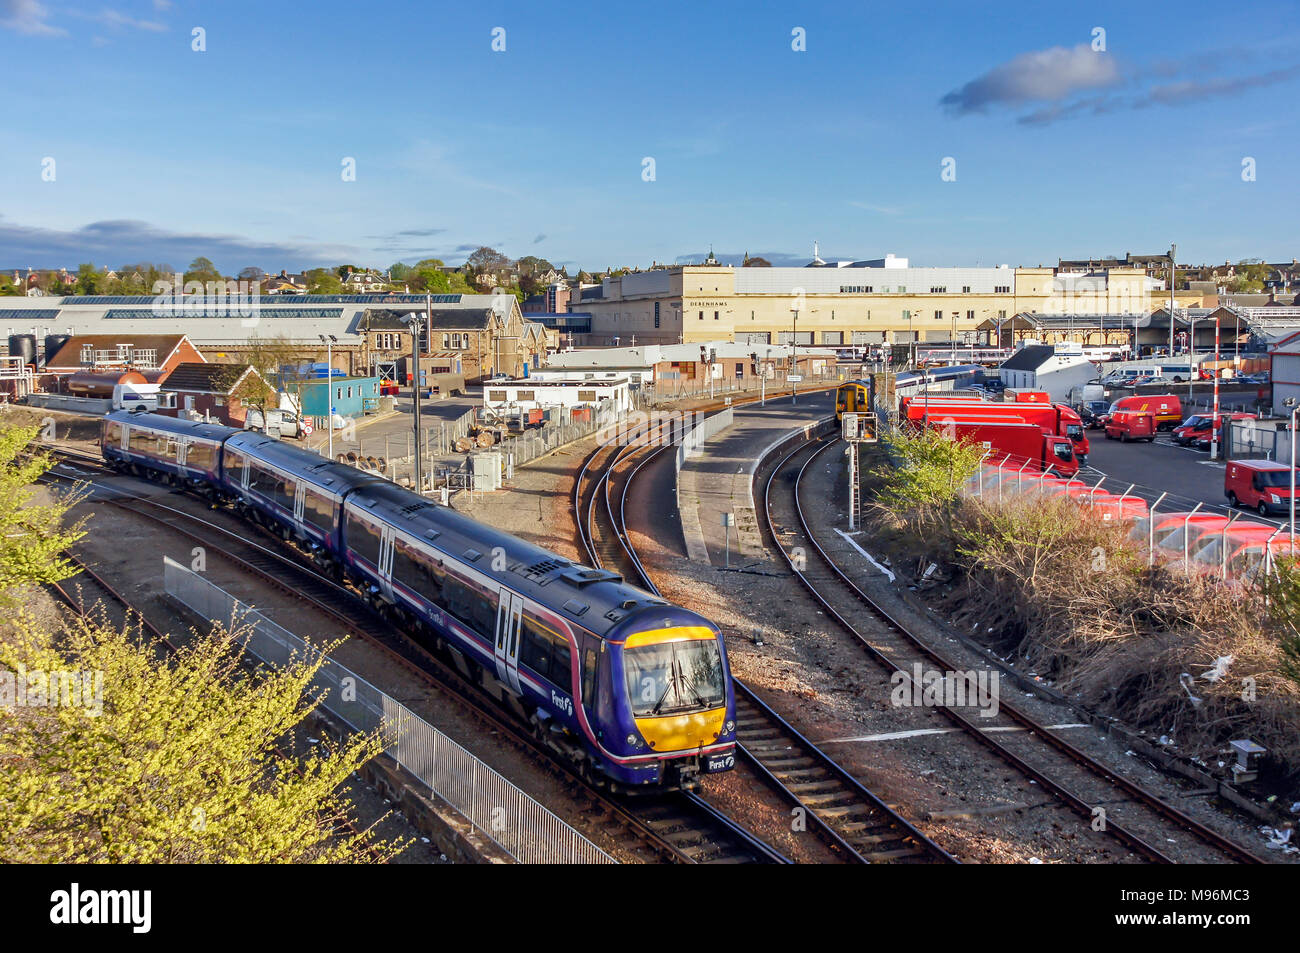 The north end of the triangle at Inverness railway Station Inverness Highland Scotland UK with a Class 170 DMU - Stock Image